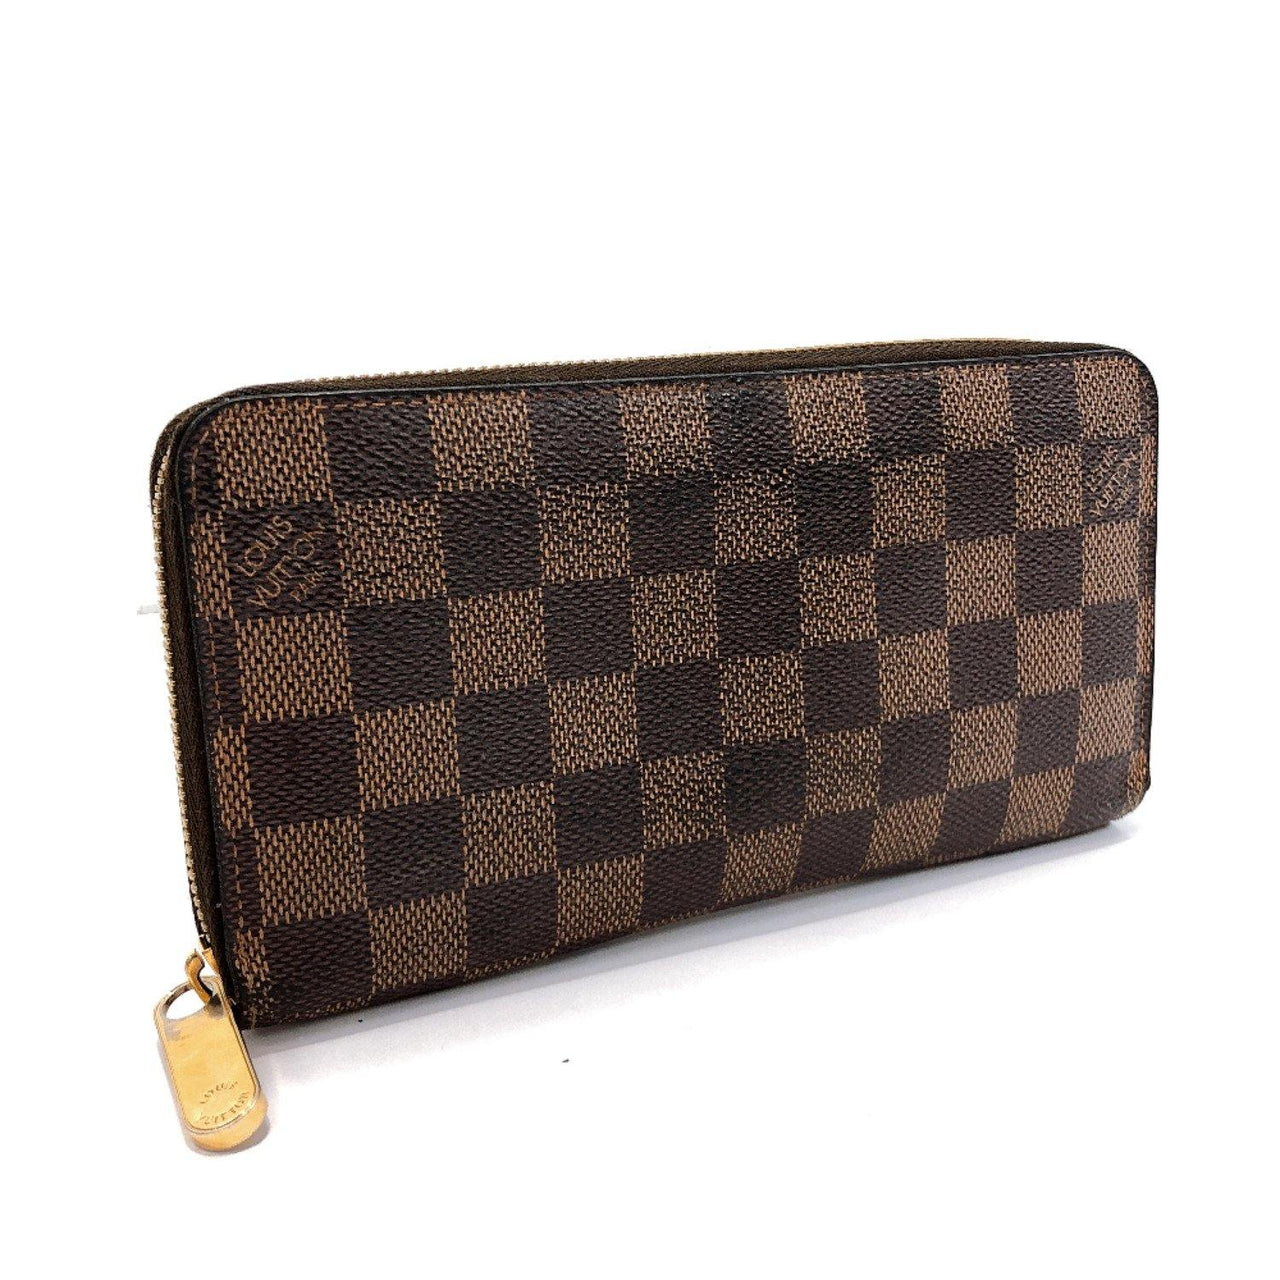 LOUIS VUITTON purse N60015 Zippy wallet Damier canvas Brown mens Used